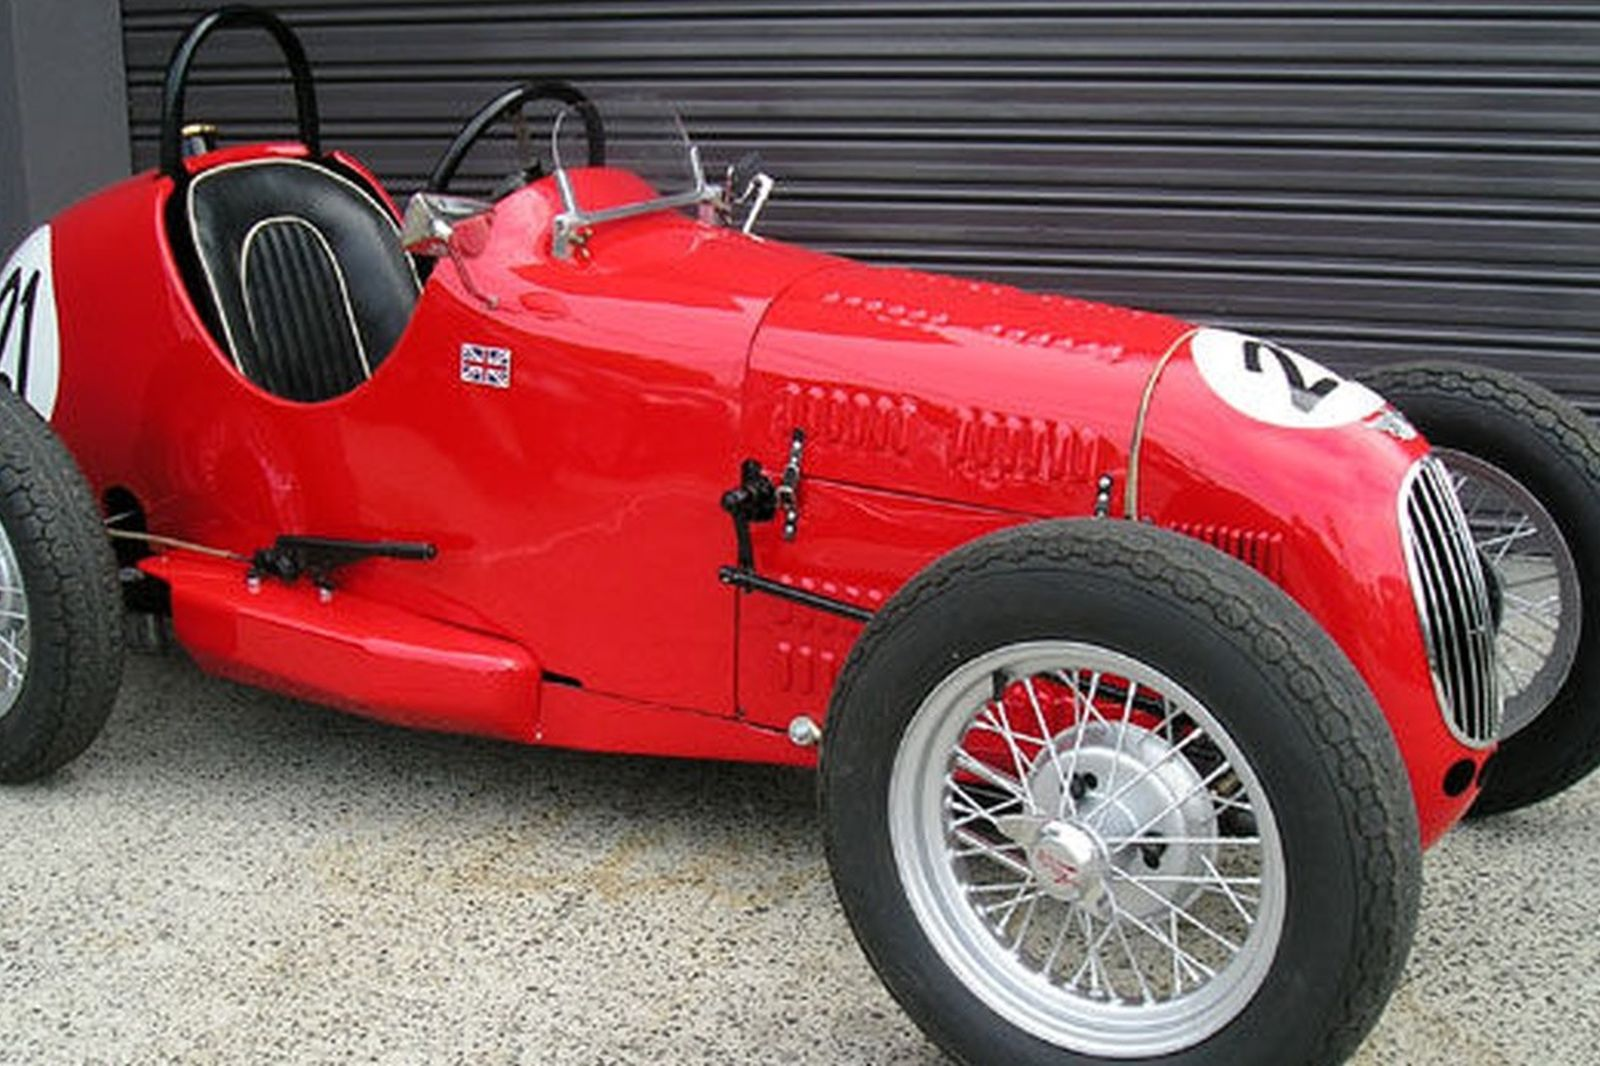 Sold: Austin 7 Special (Grand Prix Replica) Auctions - Lot 23 - Shannons